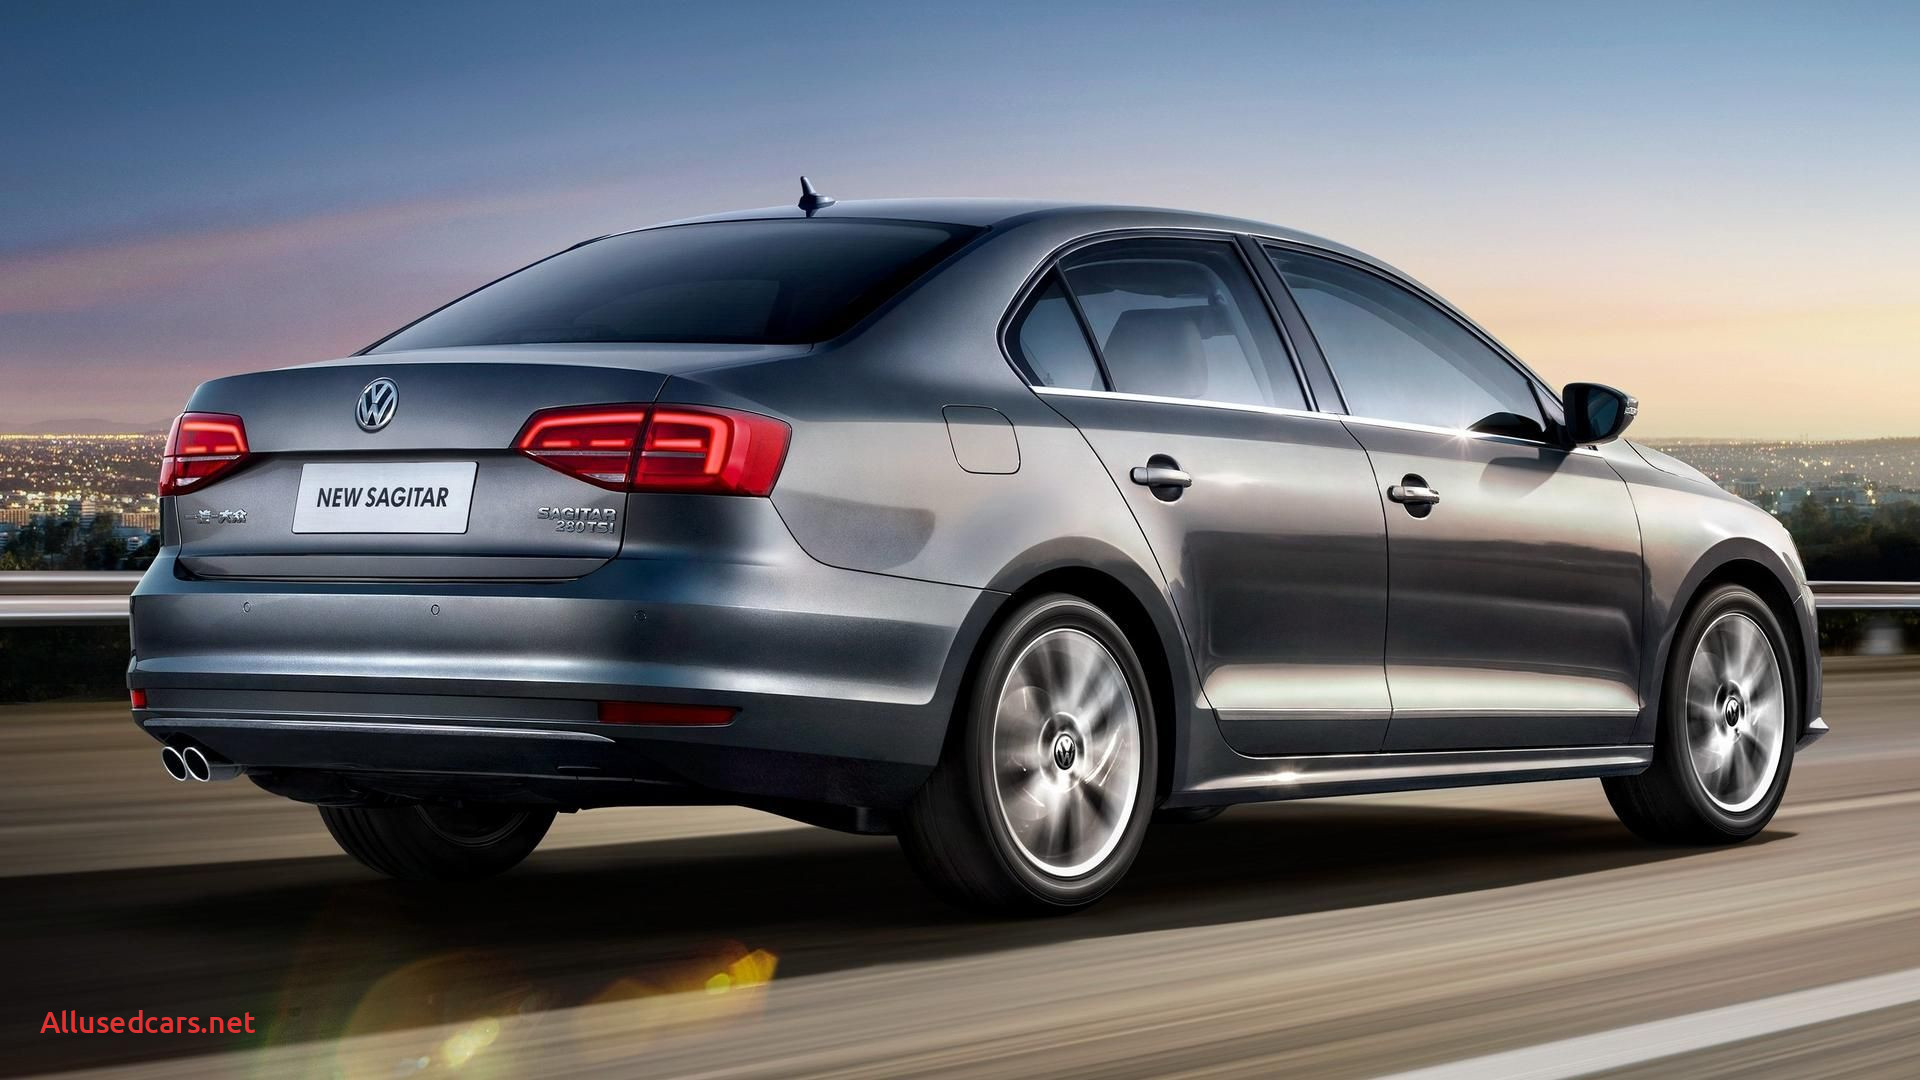 Vw Passat 2015 Inspirational Vw Sagitar Motor1 S